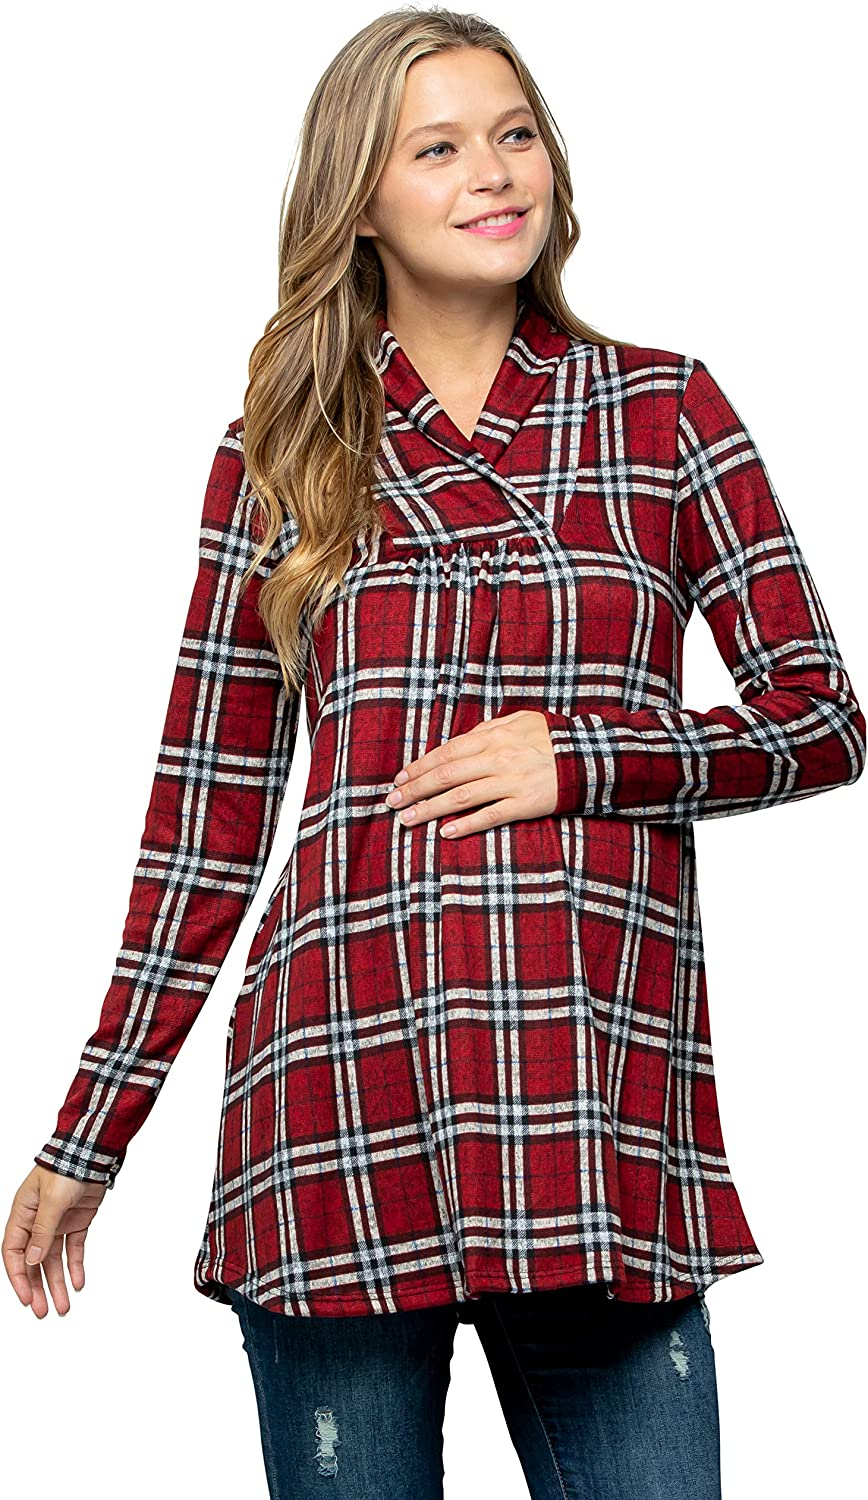 My Bump Maternity New products world's highest quality Milwaukee Mall popular Knit Sweater - Shawl Collar Neck High Long Sle